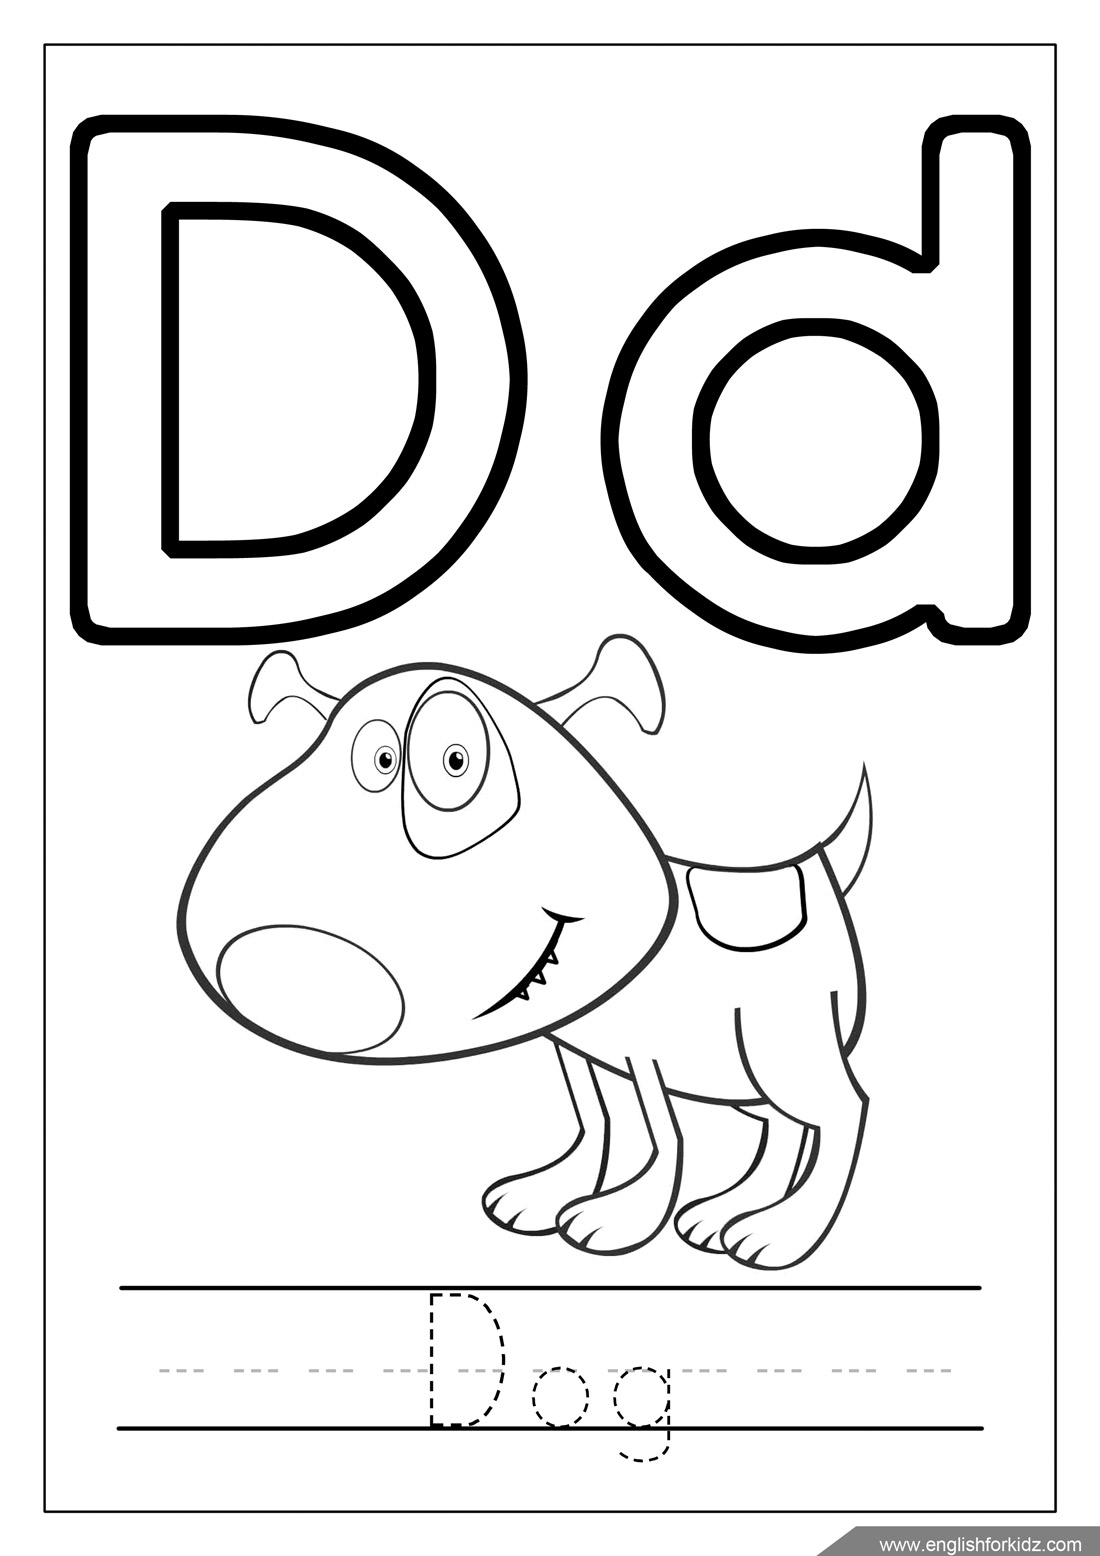 Printable Alphabet Coloring Pages (Letters Influenza A ...